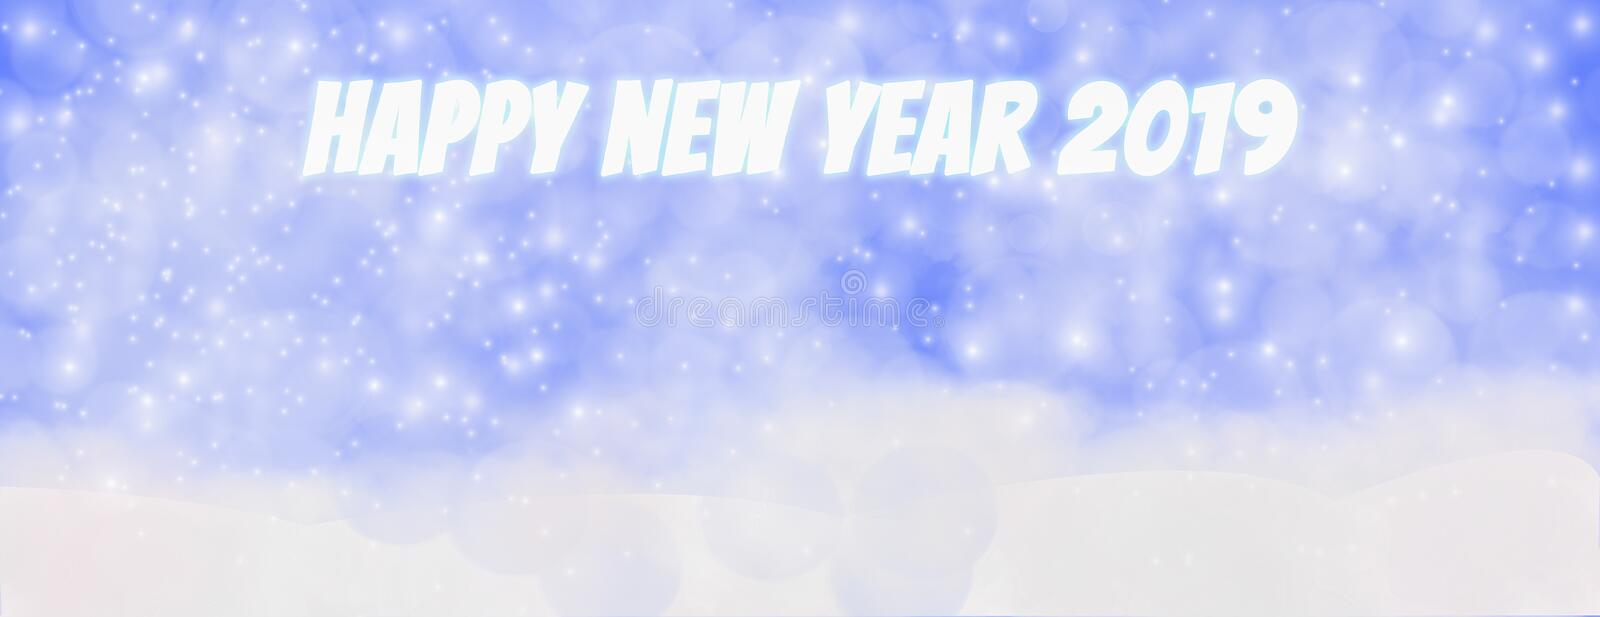 Happy new year 2019 winter outdoor with falling snowflakes,Panoramic web banner horizontal, with snow background, bokeh And vector illustration